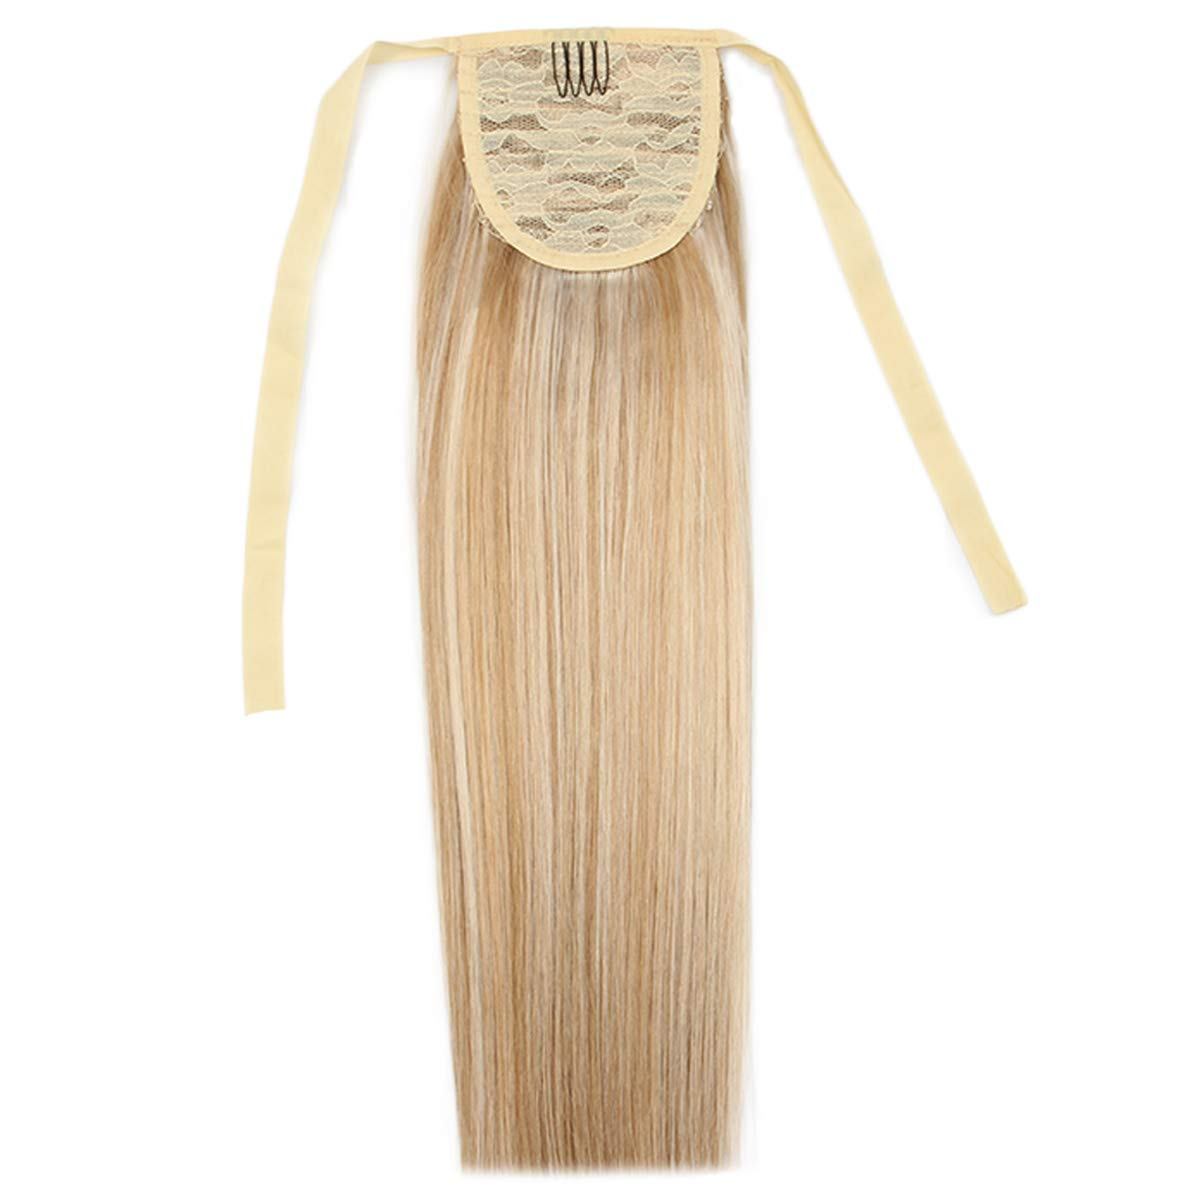 16'' Straight Drawstring Ponytail Hair Extensions Human Hair Ponytail Extension Ribbon Clip in Ponytails Hairpiece 80g